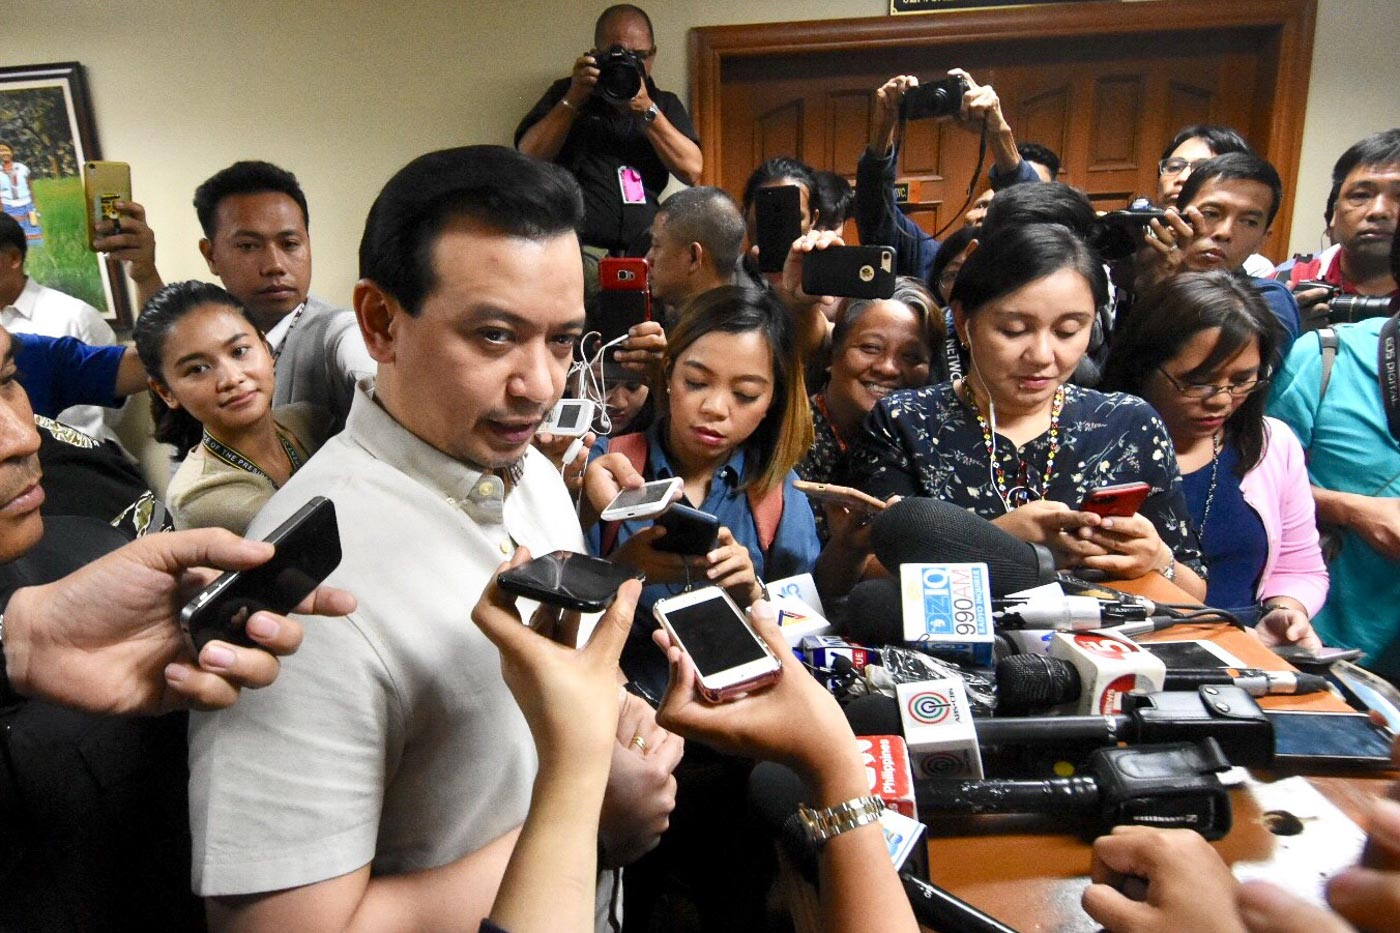 NEWSMAKER. Senator Antonio Trillanes IV holds a press briefing on October 22, 2018, on the decision of Judge Andres Soriano to deny the DOJ's request to issue an arrest warrant. File photo by Angie de Silva/Rappler